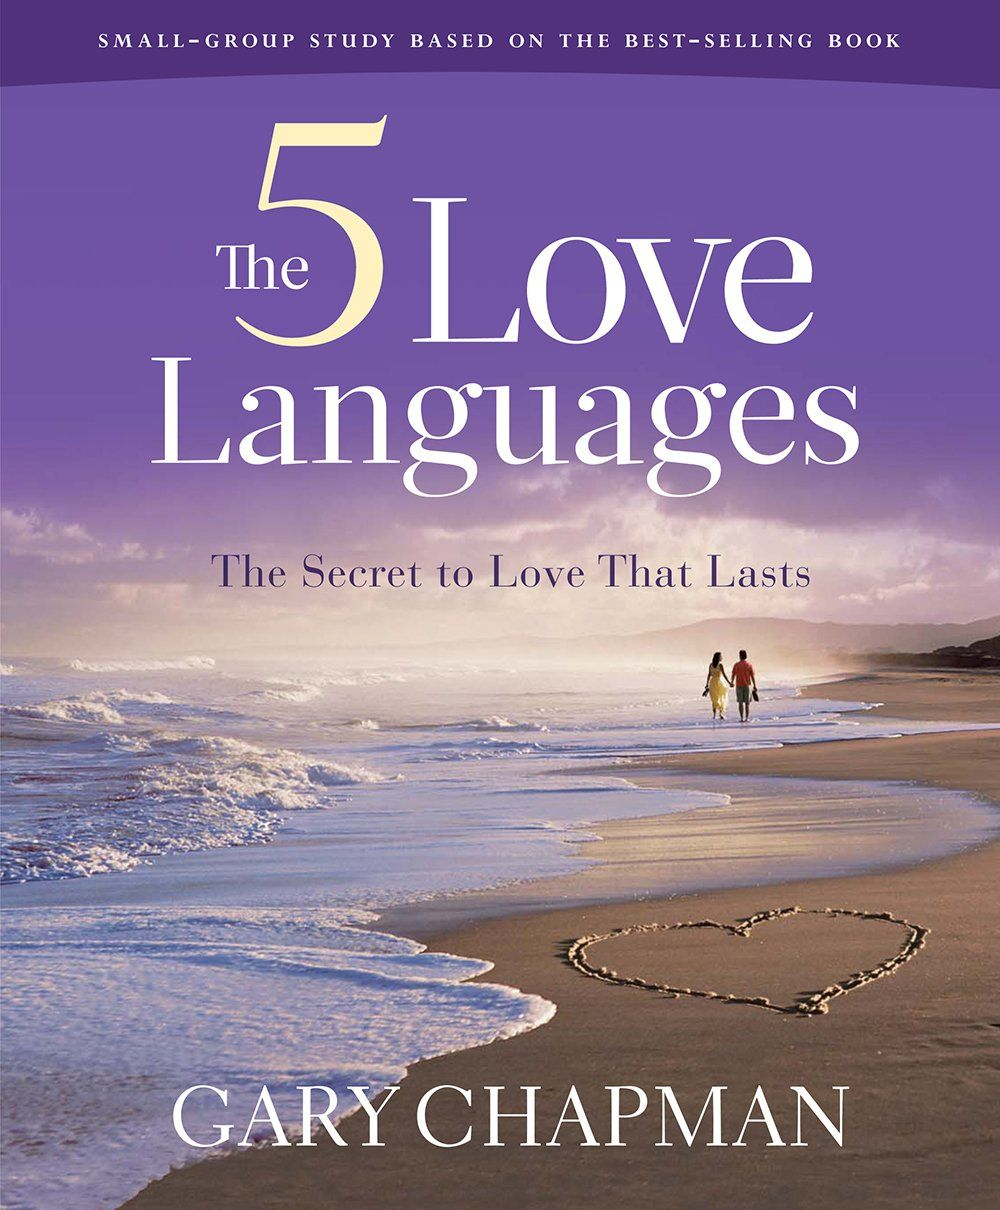 So What Exactly Are The 5 Love Languages